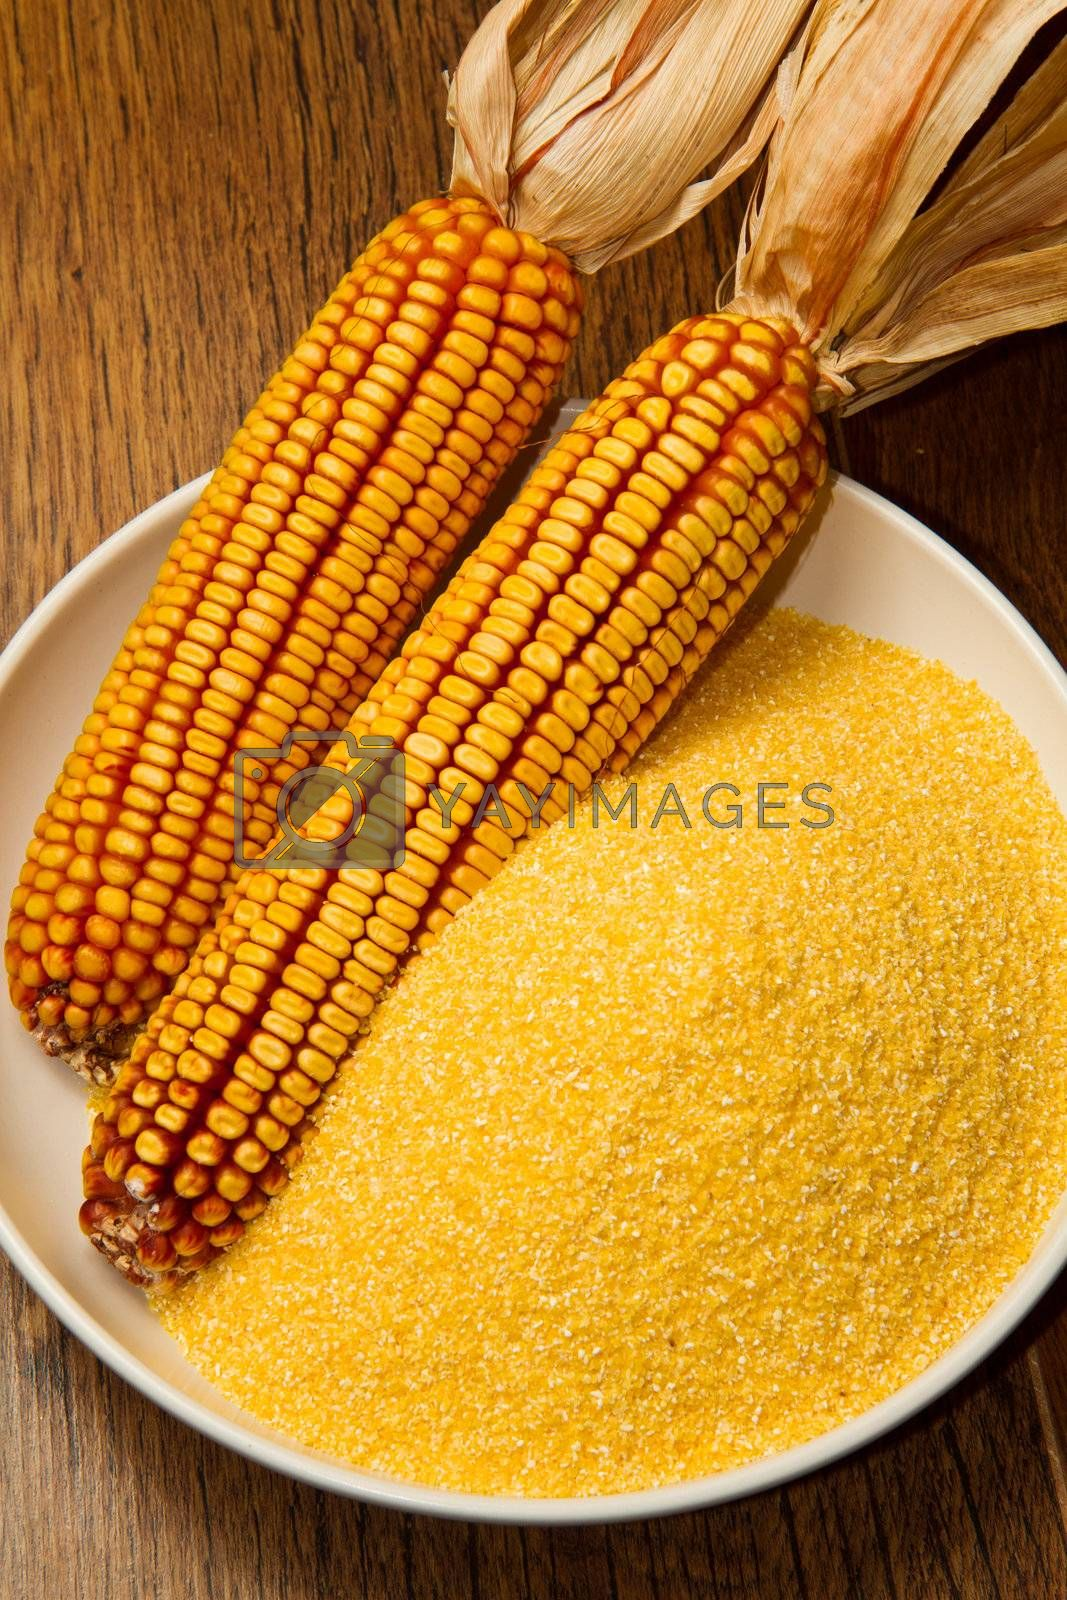 Still life with maize products